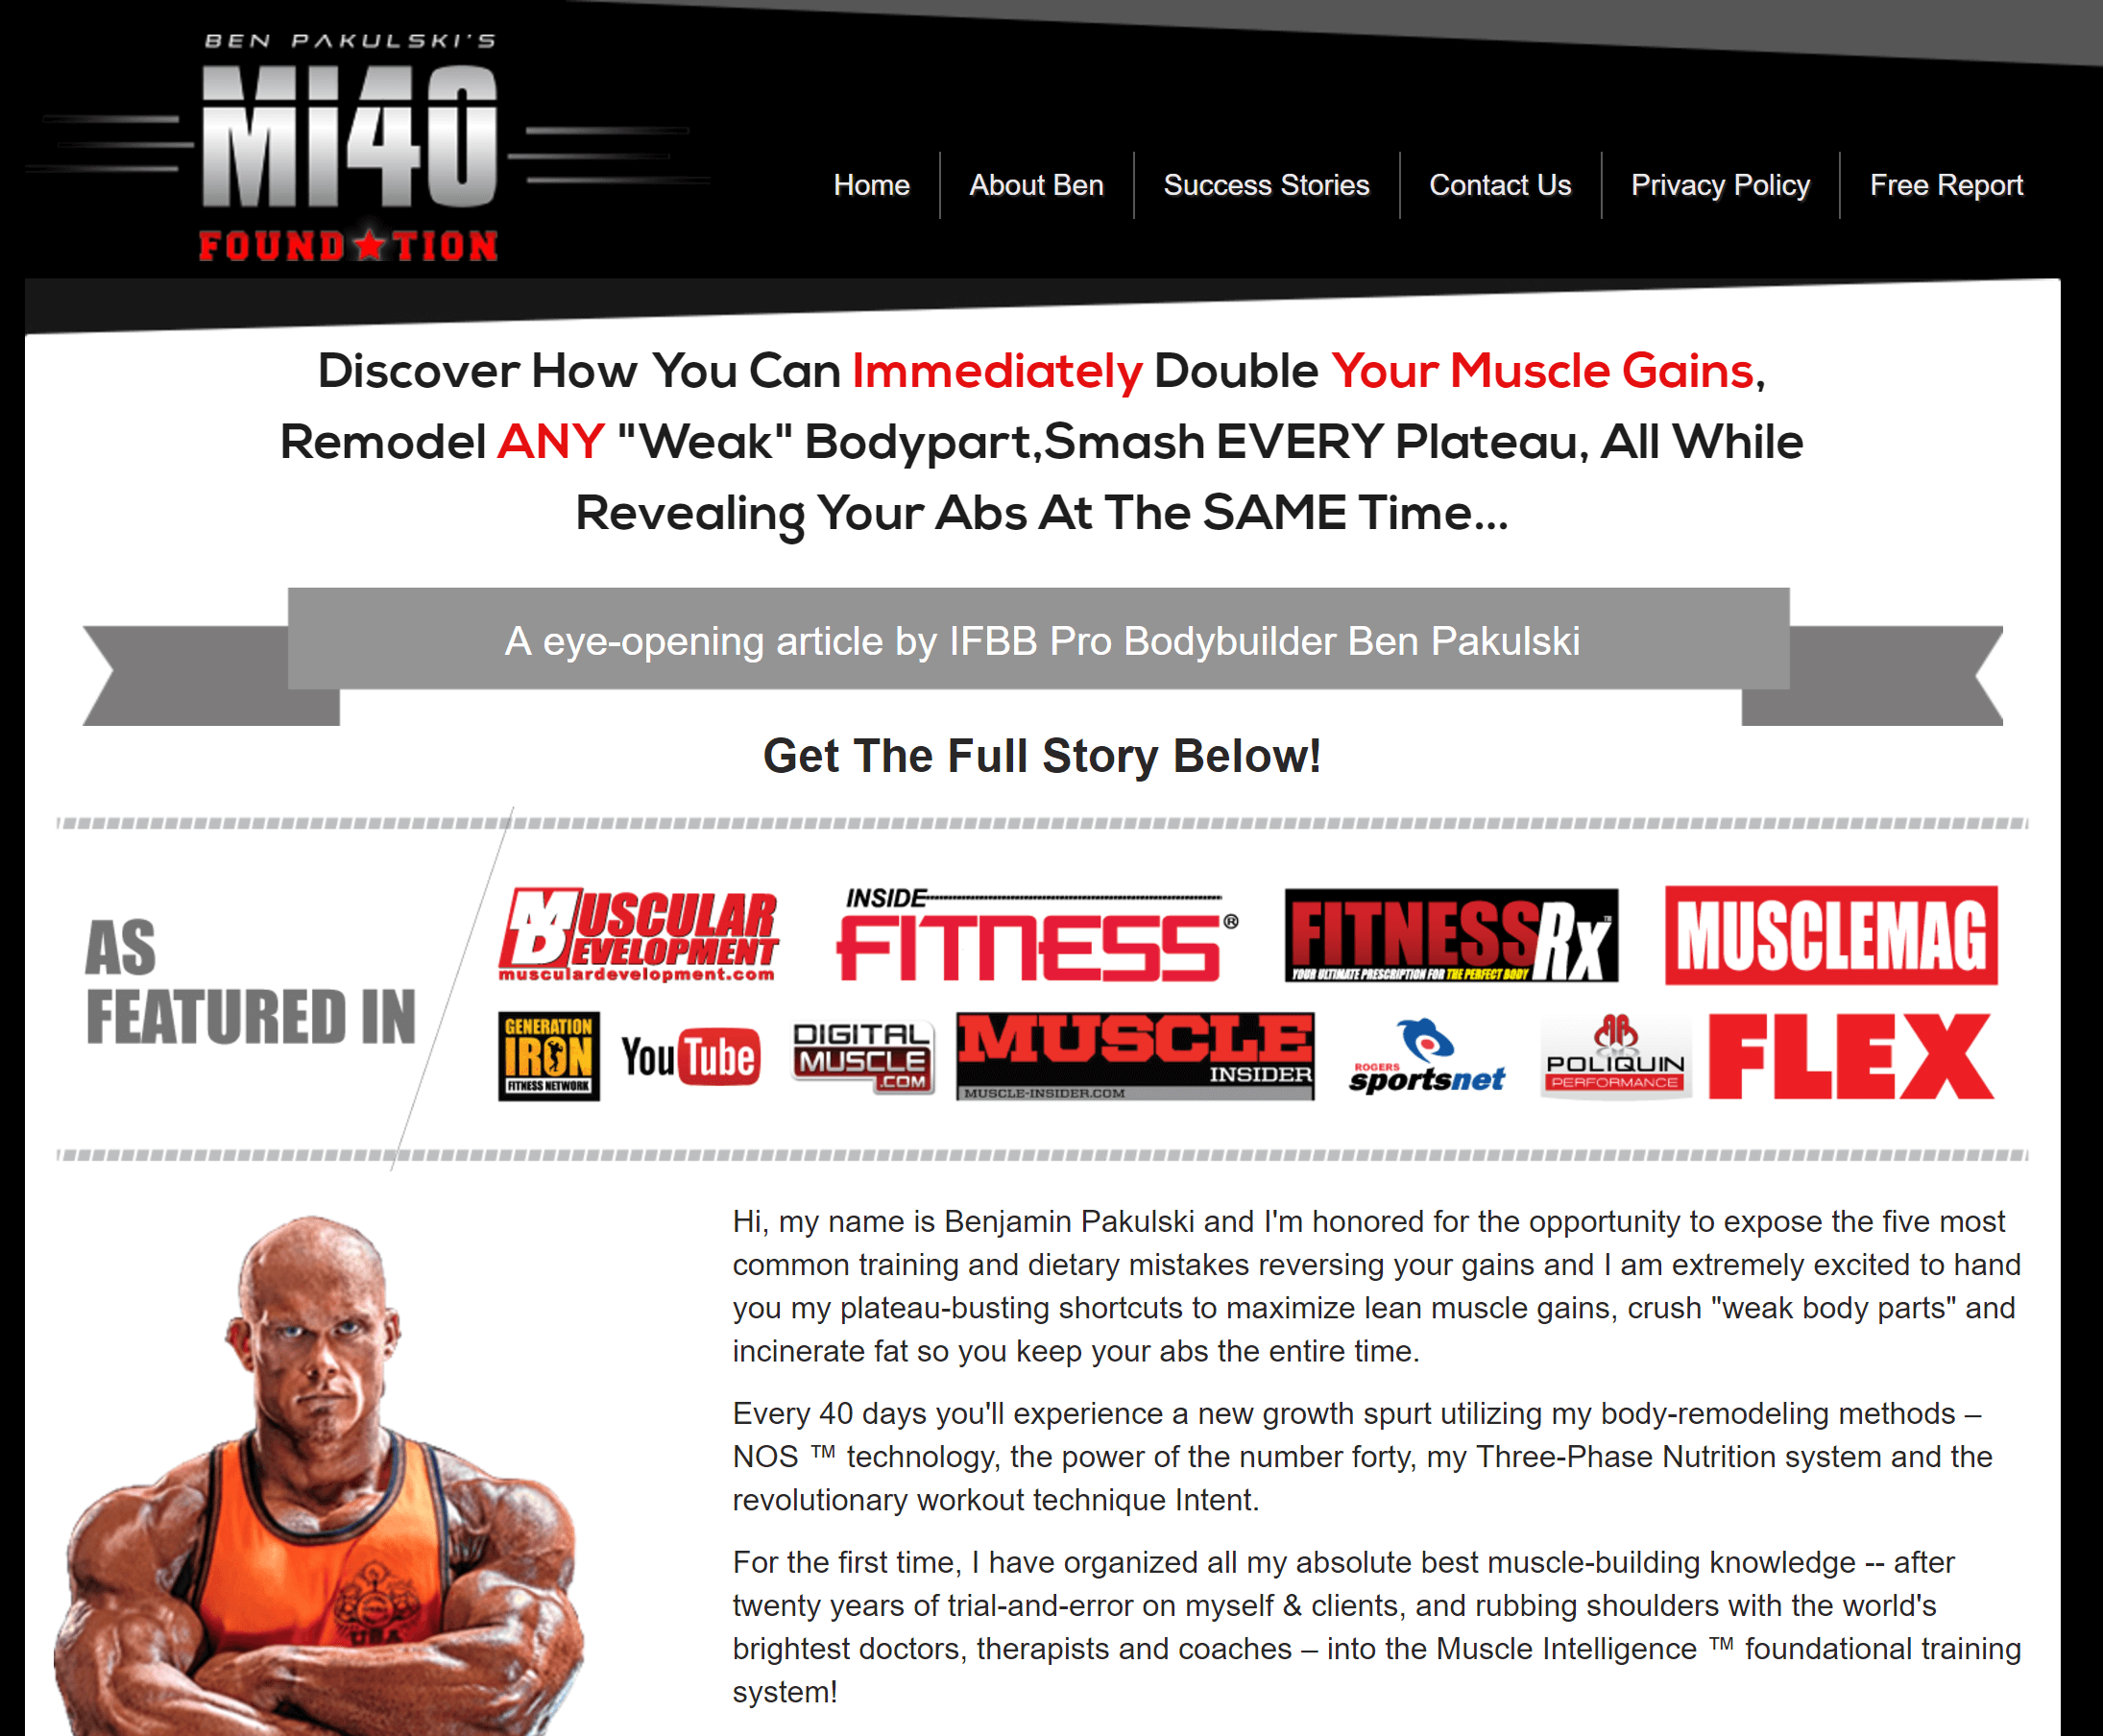 MI40 the best muscle gain program